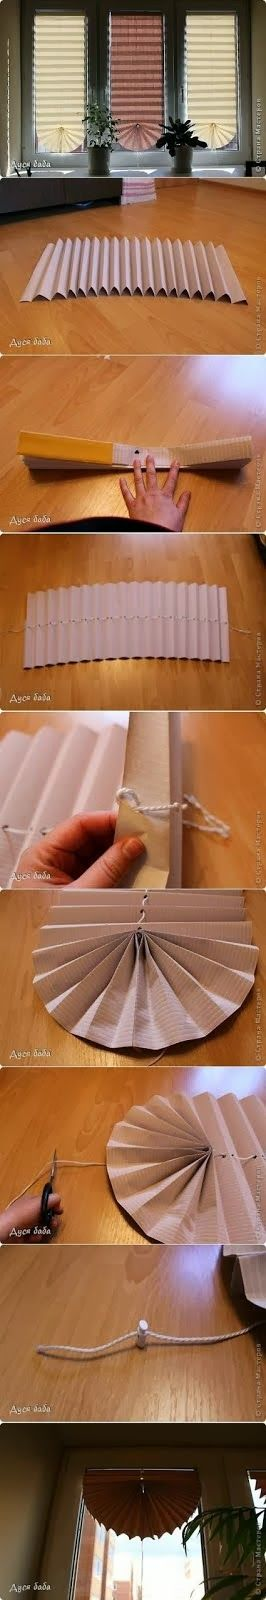 17 Best images about Reciclagem Papel / DIY with Paper on ...